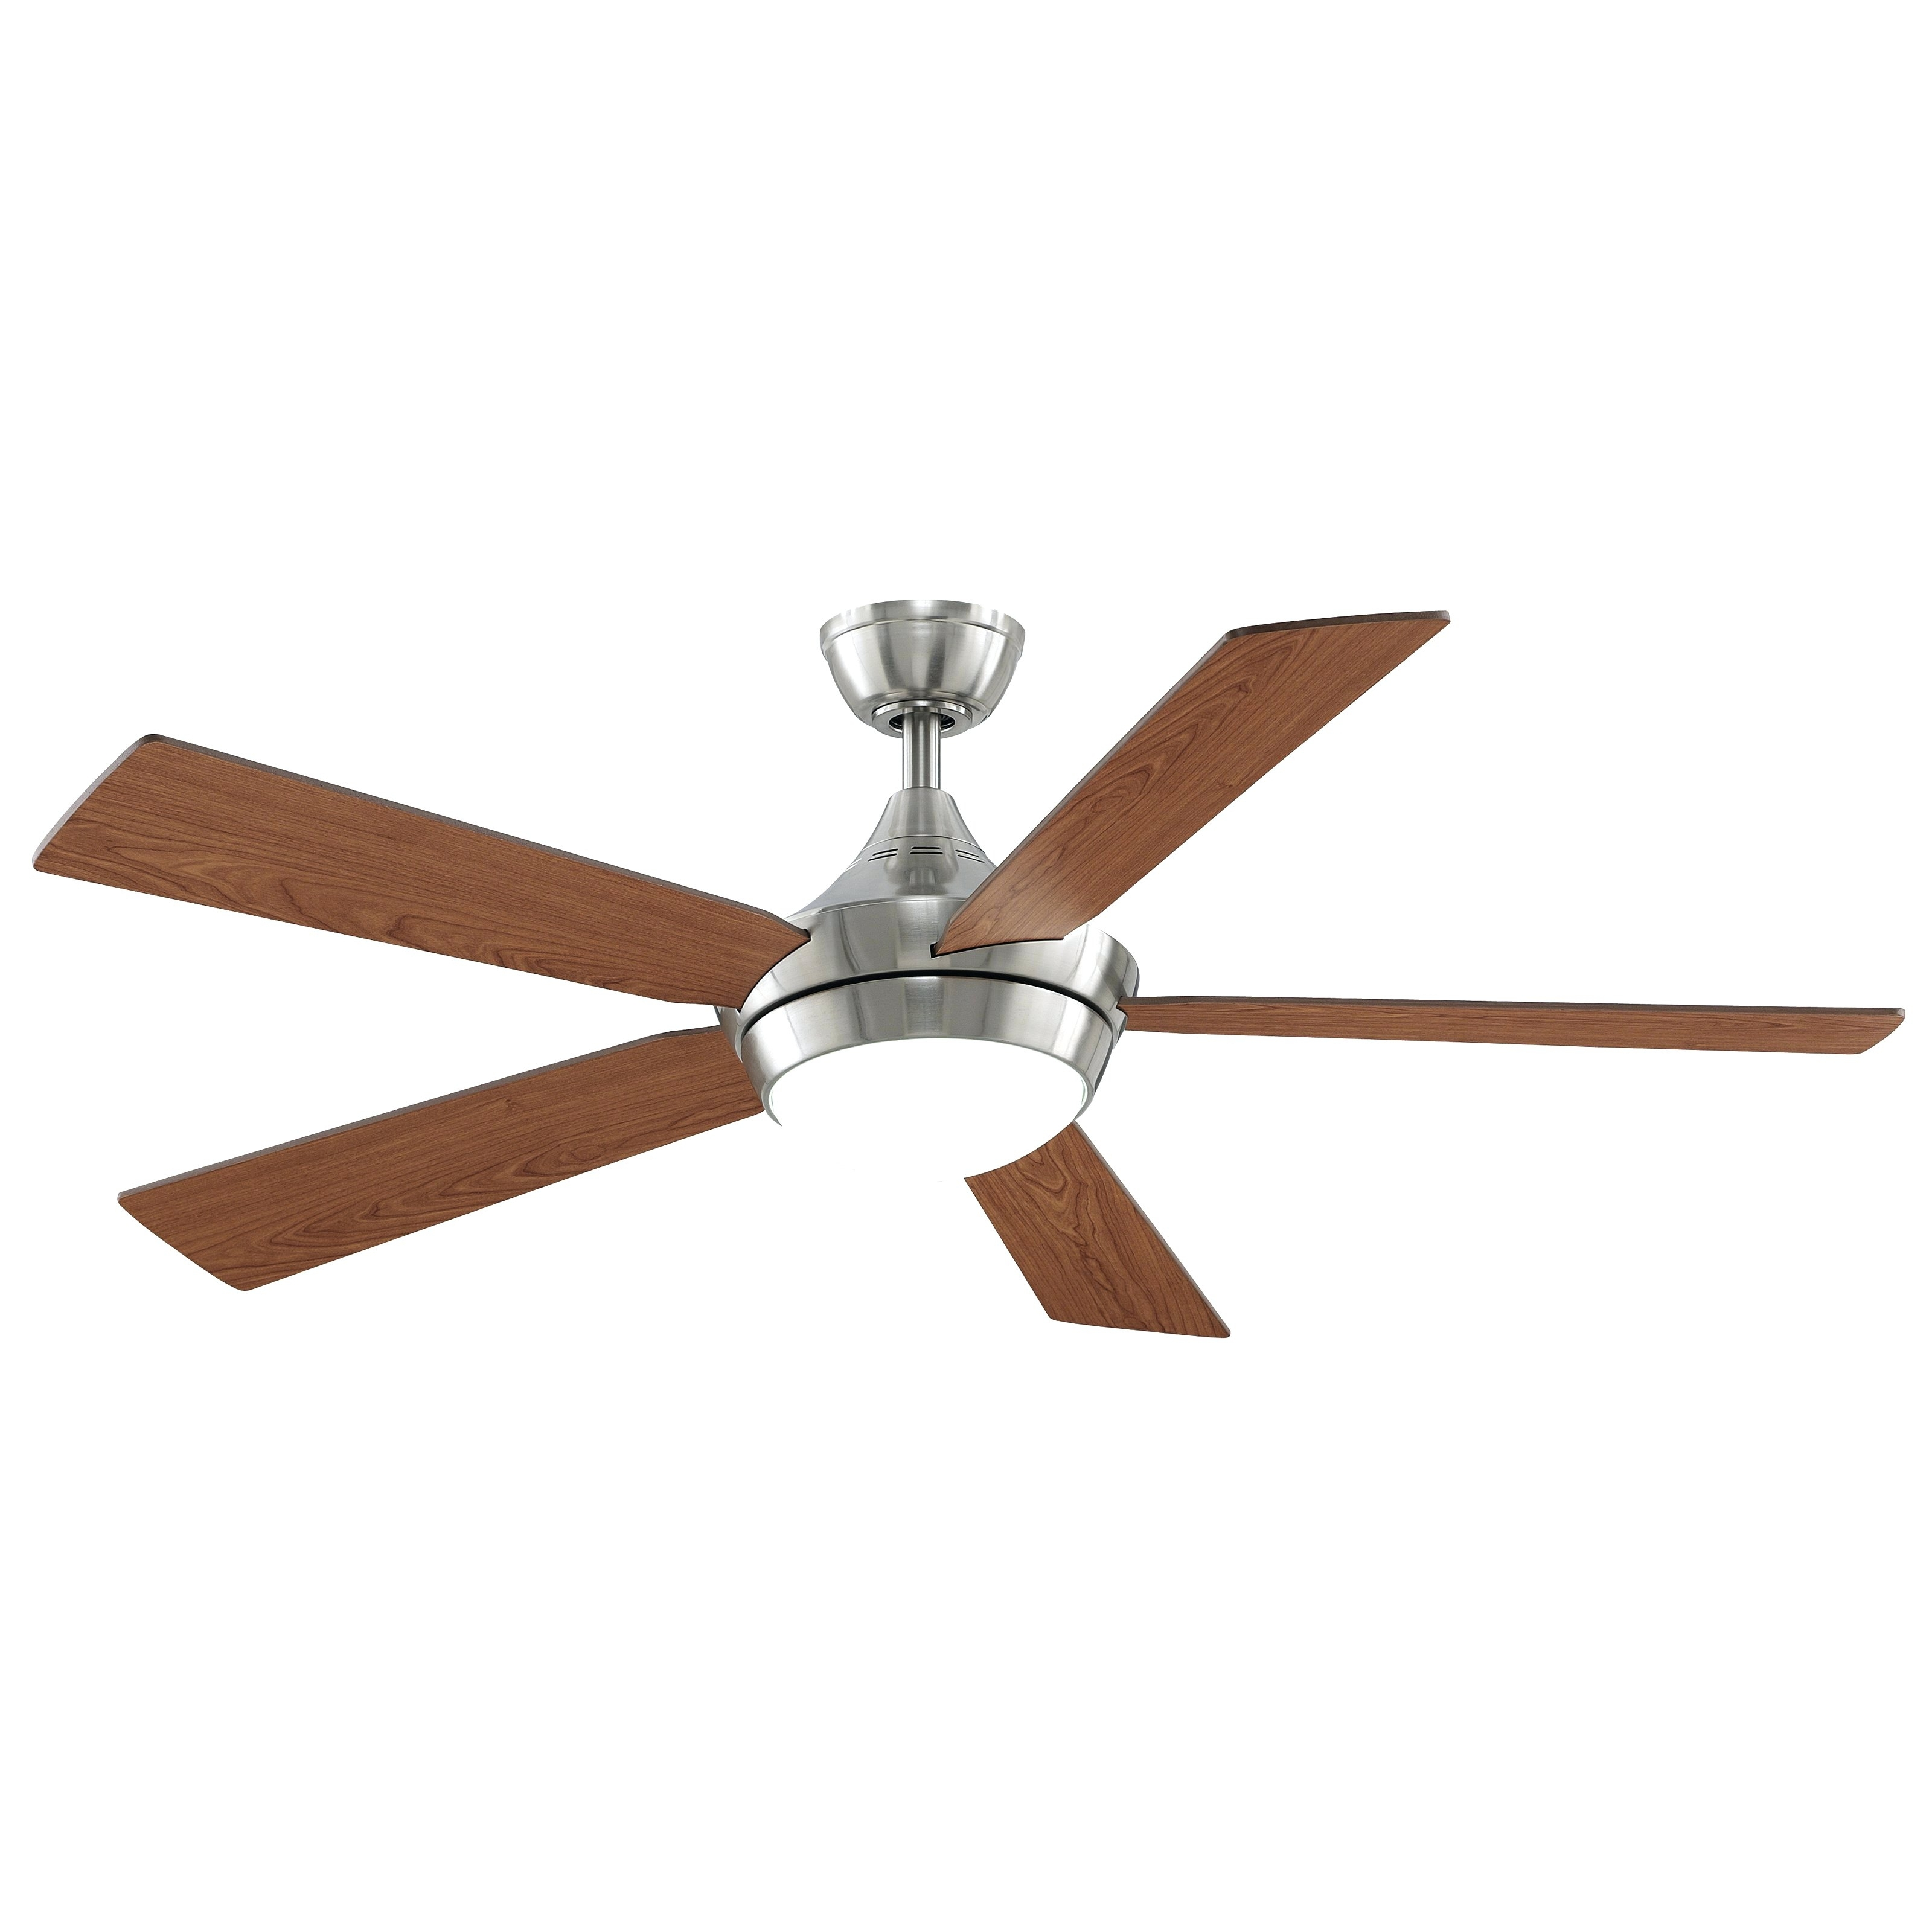 Outdoor Ceiling Fans At Bunnings For Well Known Mercator Ceiling Fans Bunnings • Ceiling Fans Ideas (View 3 of 20)